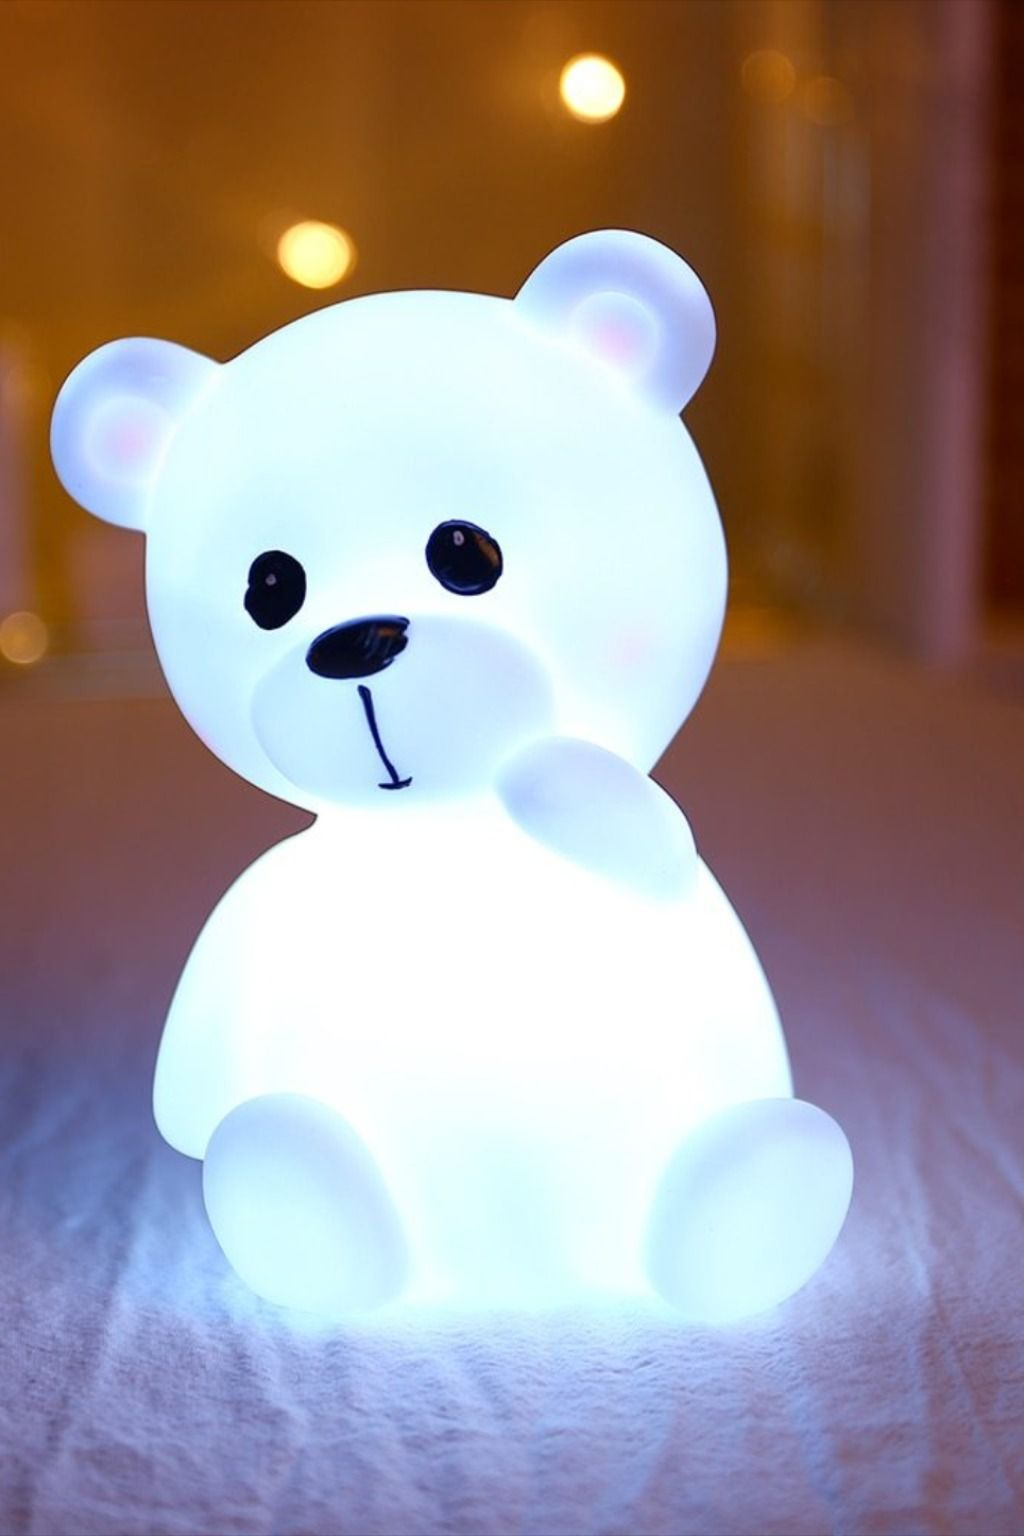 Adorable Silicon Led Teddy Bear Lamp In 2020 Pastel Home Decor Kids Bedroom Decor Home Goods Decor